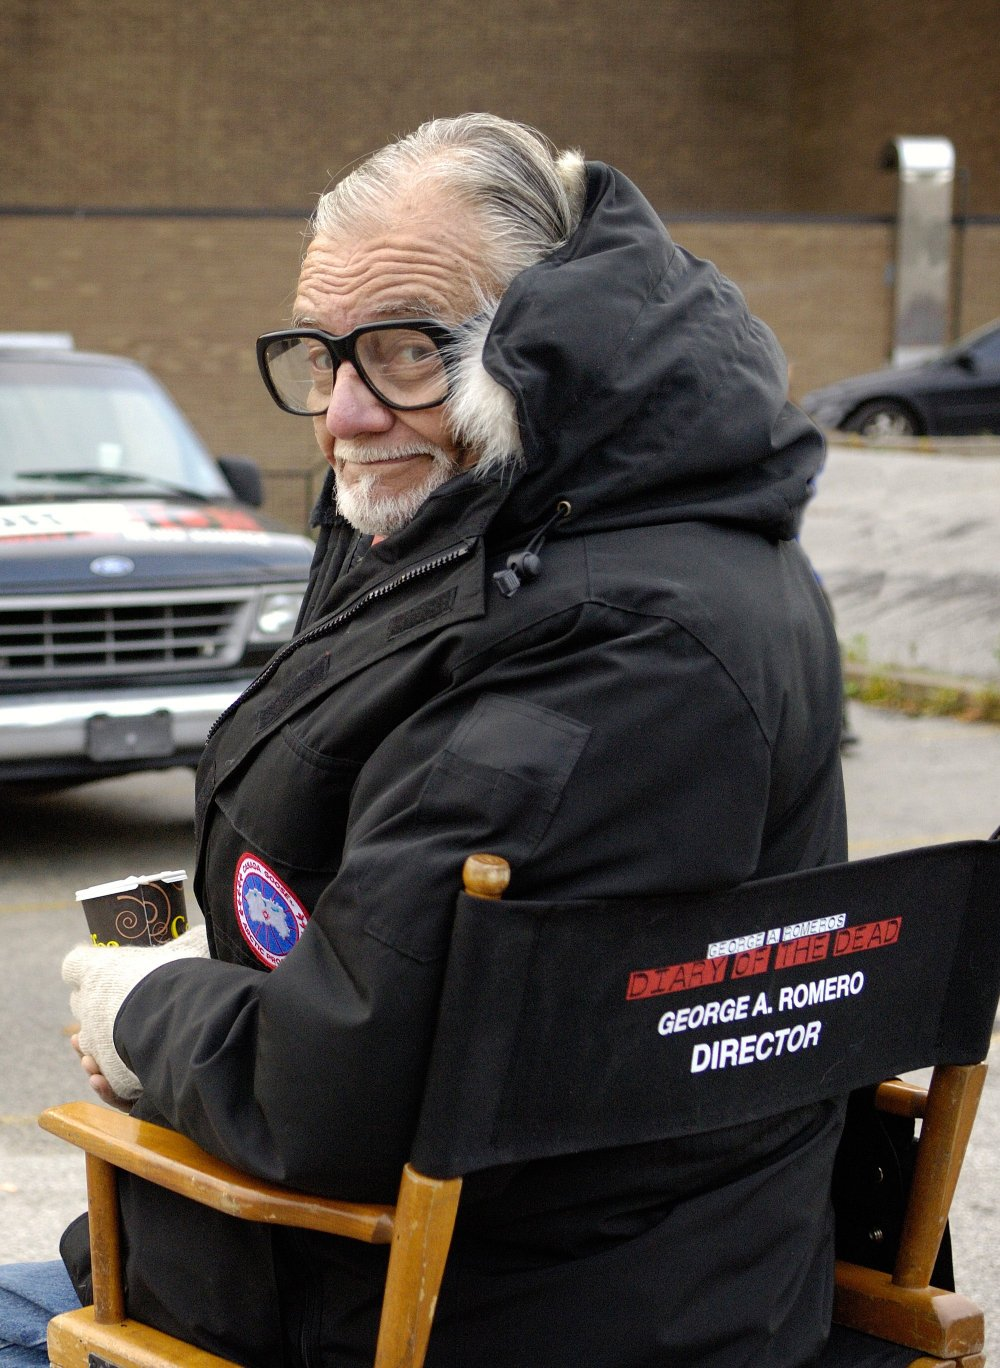 George A Romero shooting Diary of the Dead (2008)